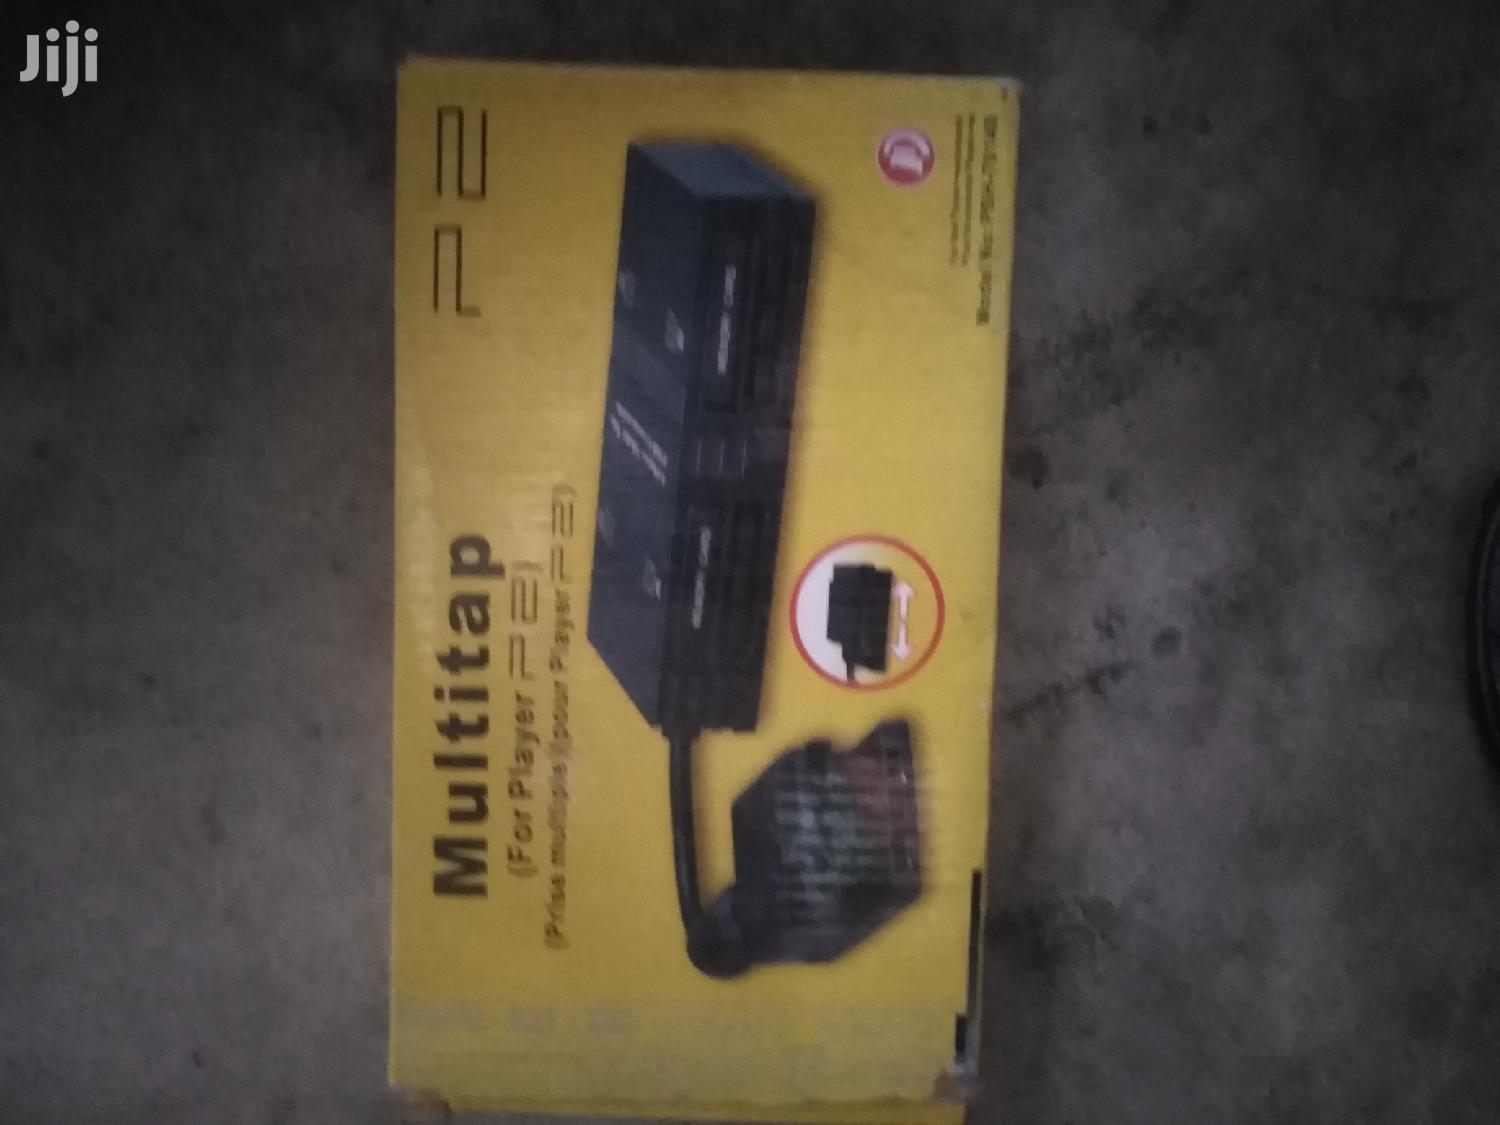 PS2 Multitap Adapter | Video Game Consoles for sale in Achimota, Greater Accra, Ghana